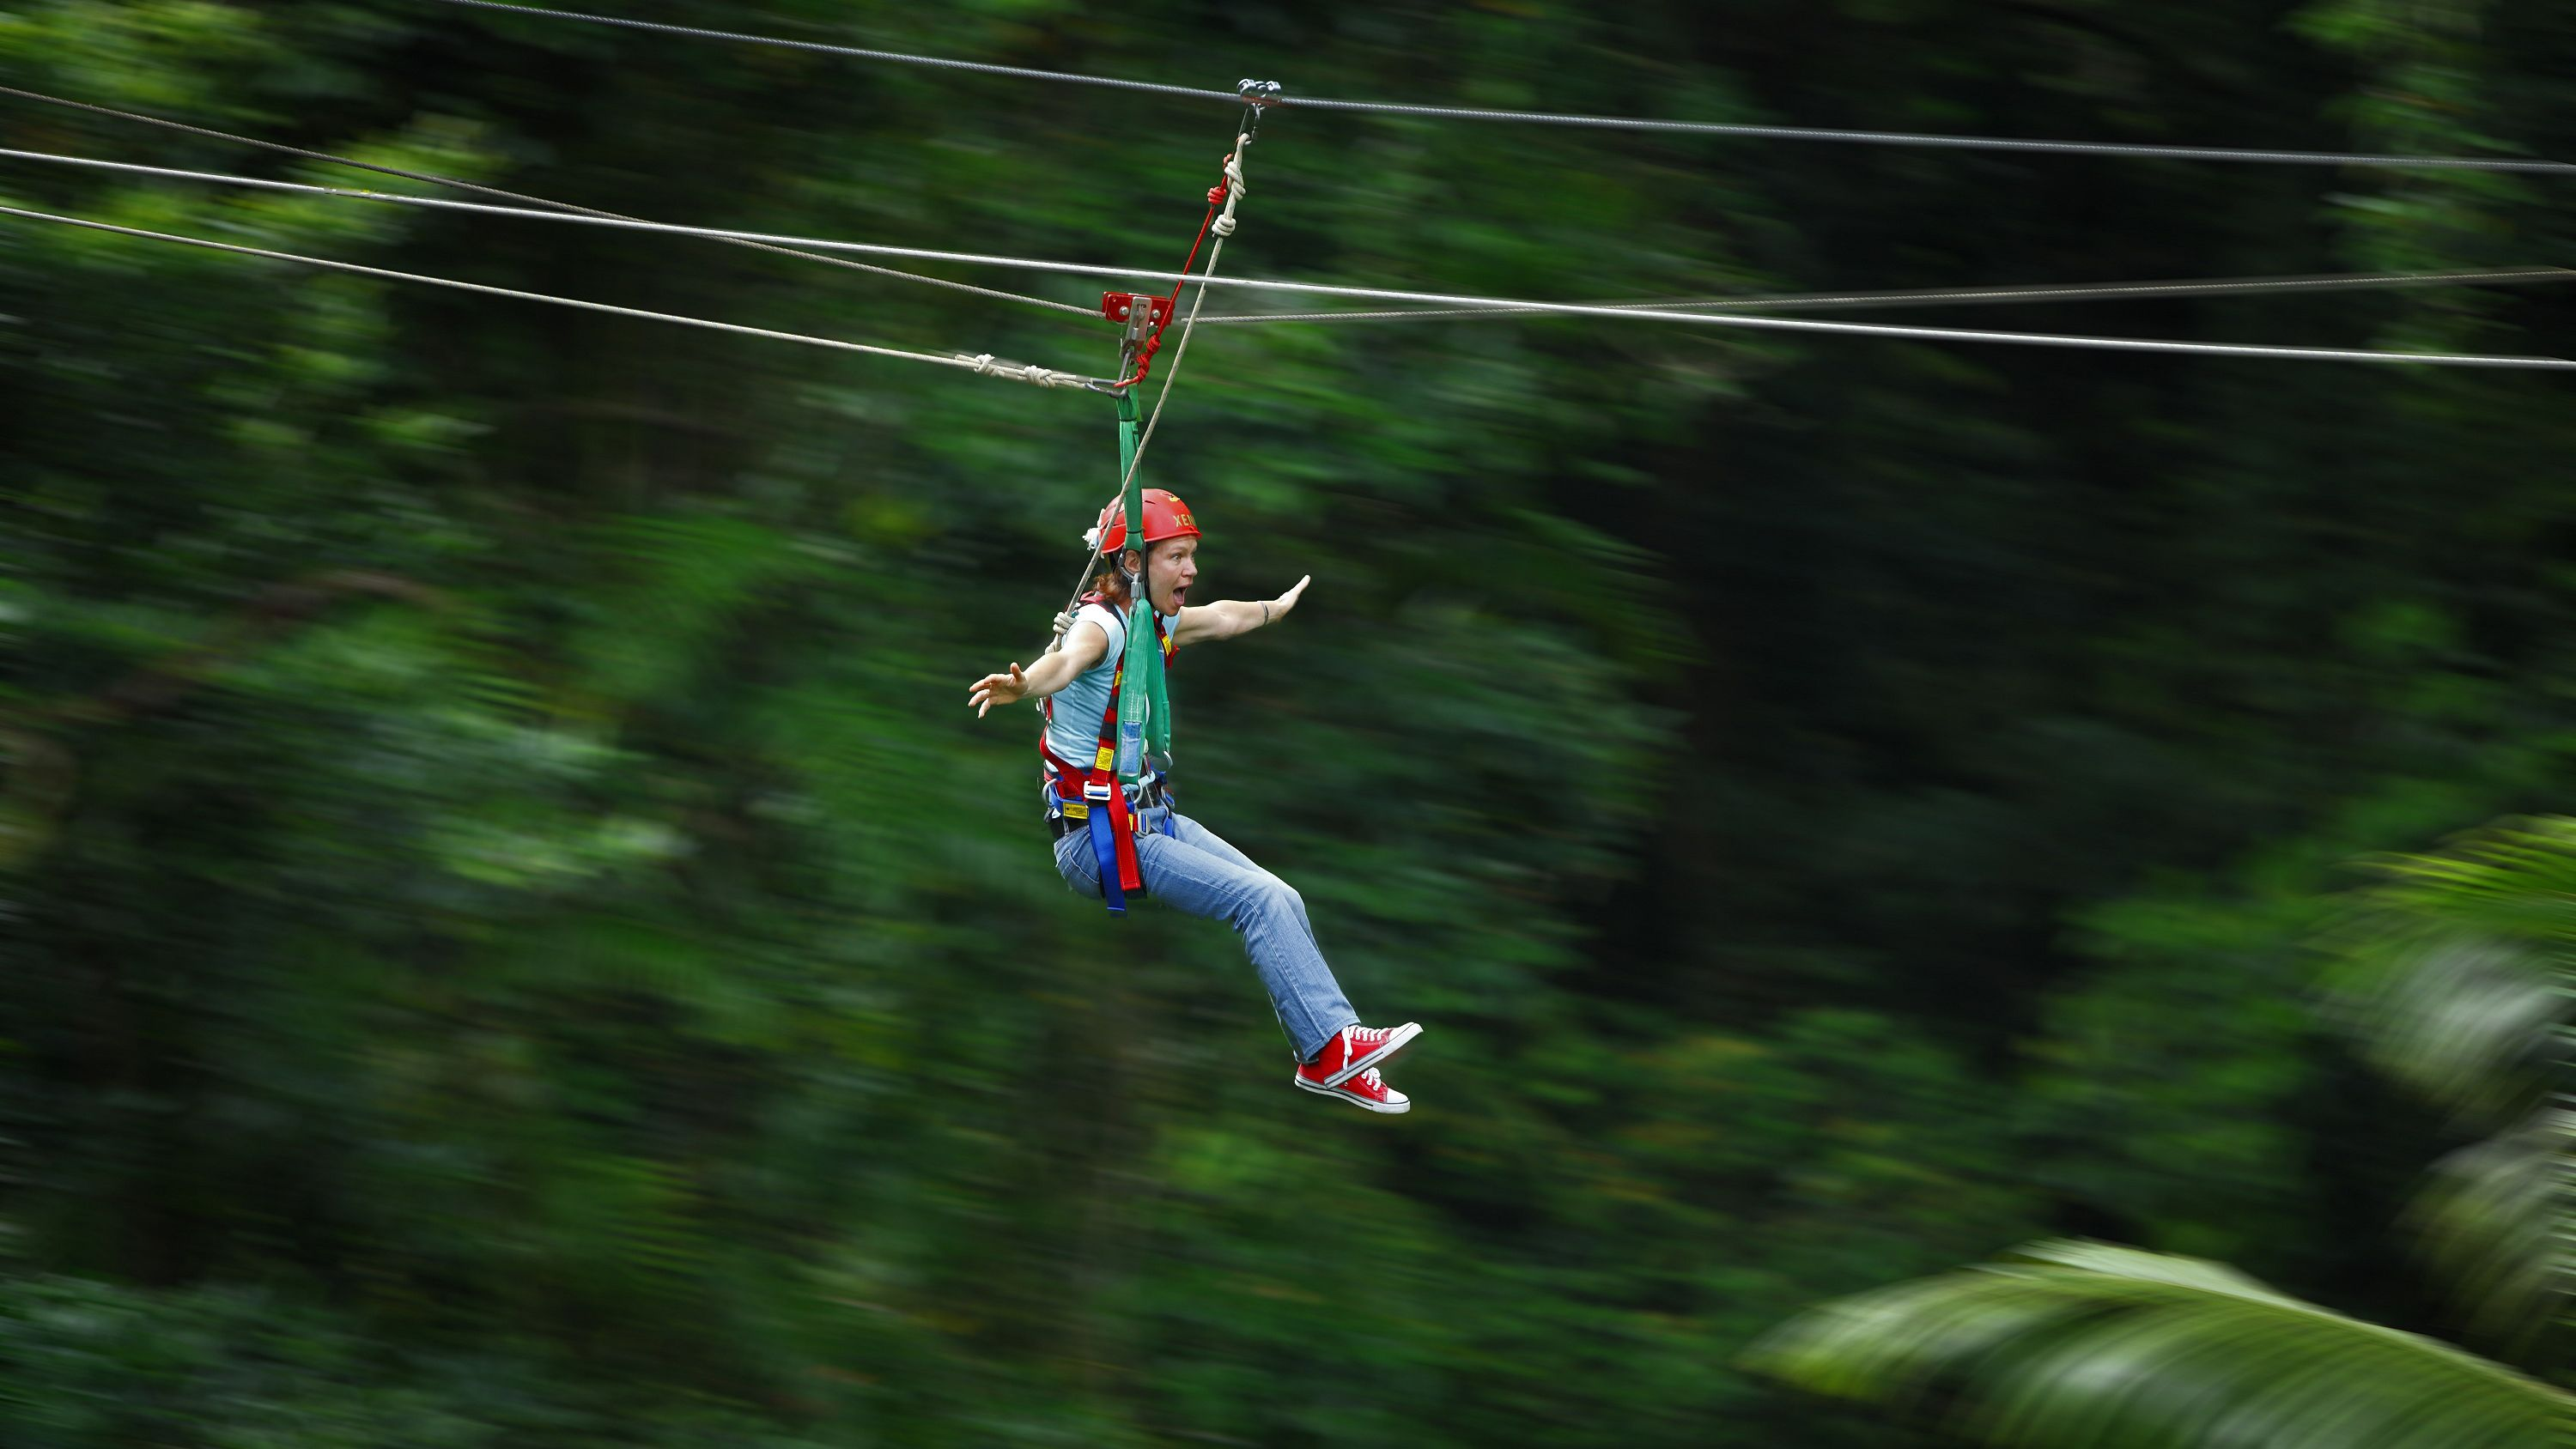 a happy girls quickly zip-lining down a zip among trees.